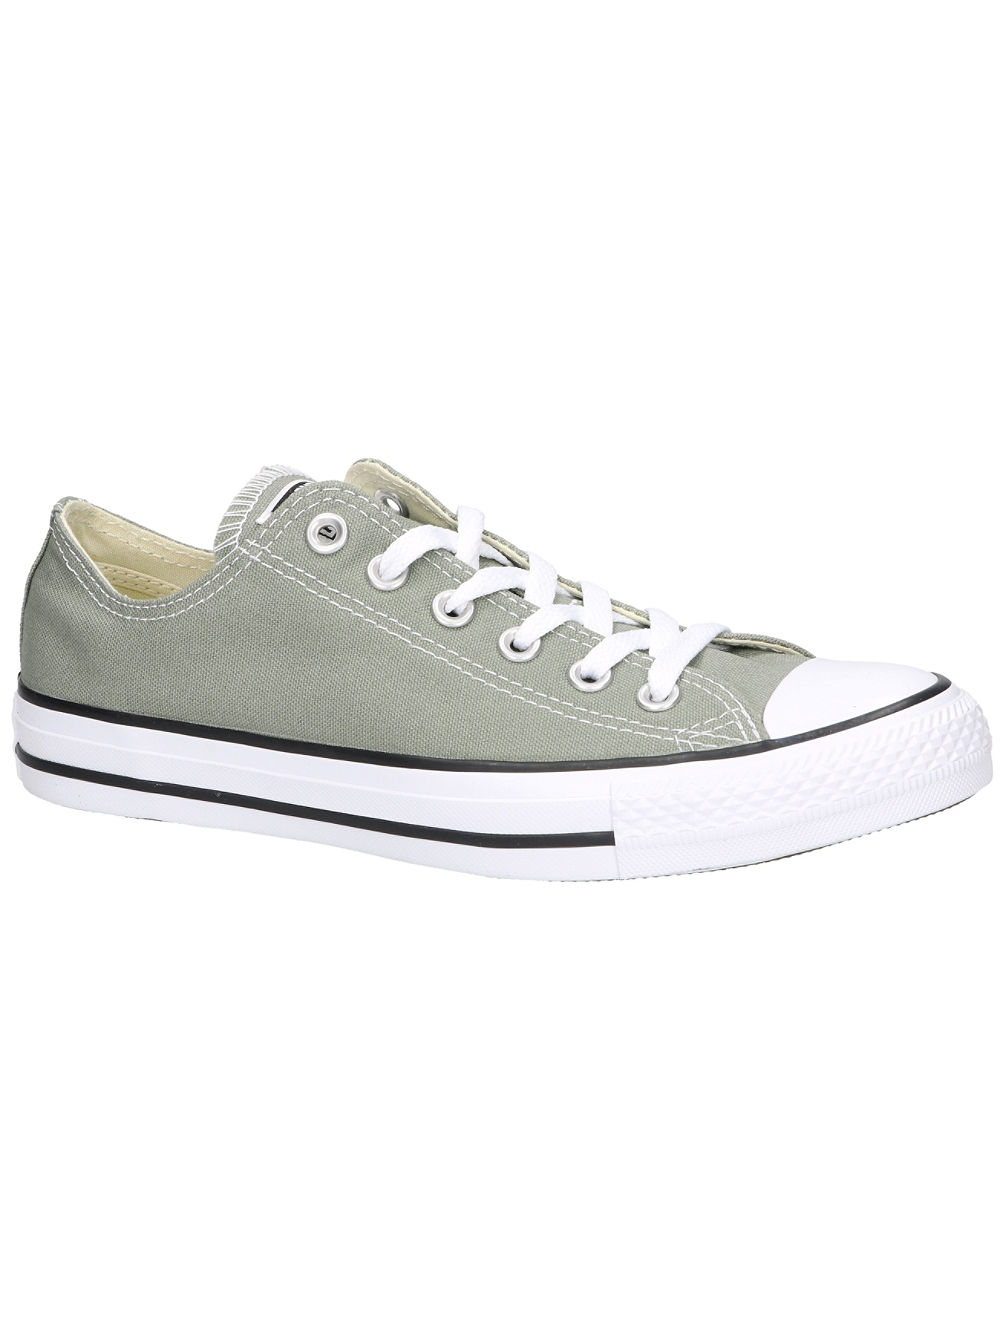 ae9becd44d1a65 Buy Converse Chuck Taylor All Star Sneakers online at blue-tomato.com